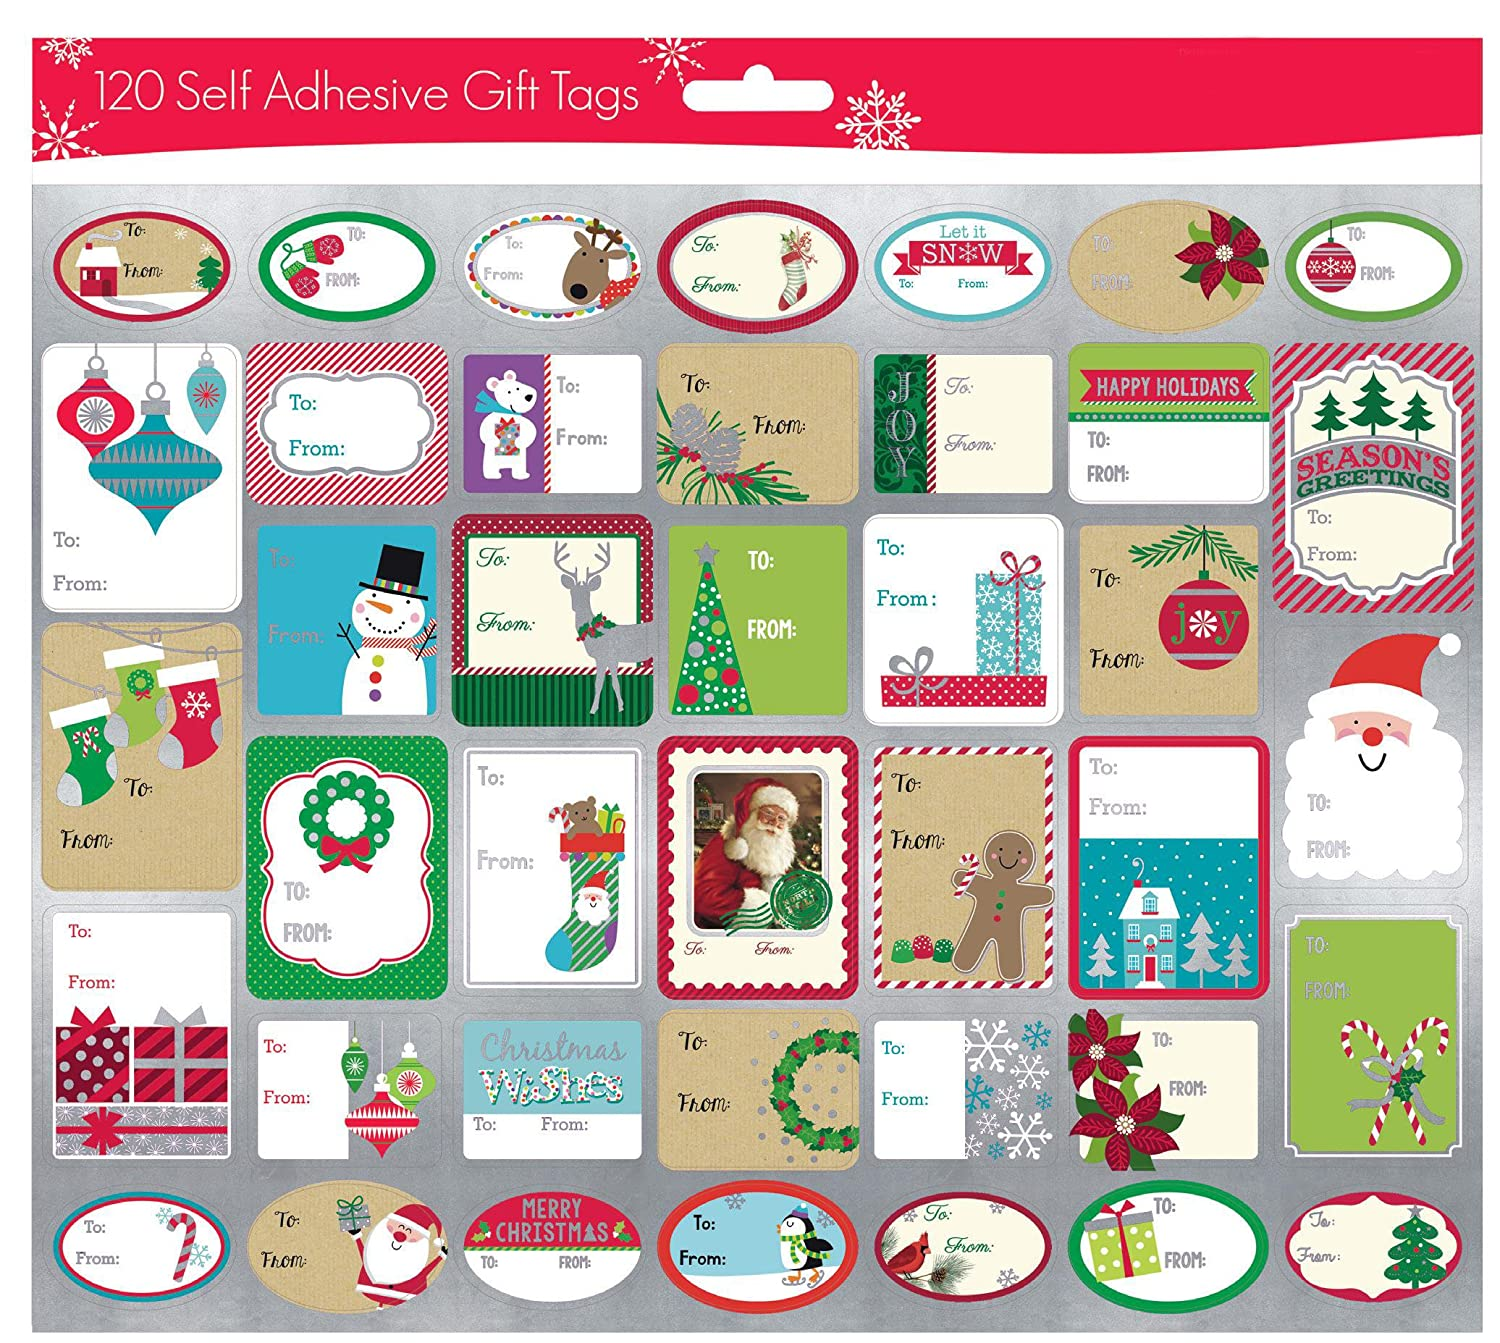 Christmas Labels.Pack Of 120 Self Adhesive Christmas Gift Tags Labels 3 Sheets With 40 Different Designs Xmas Gift Labels